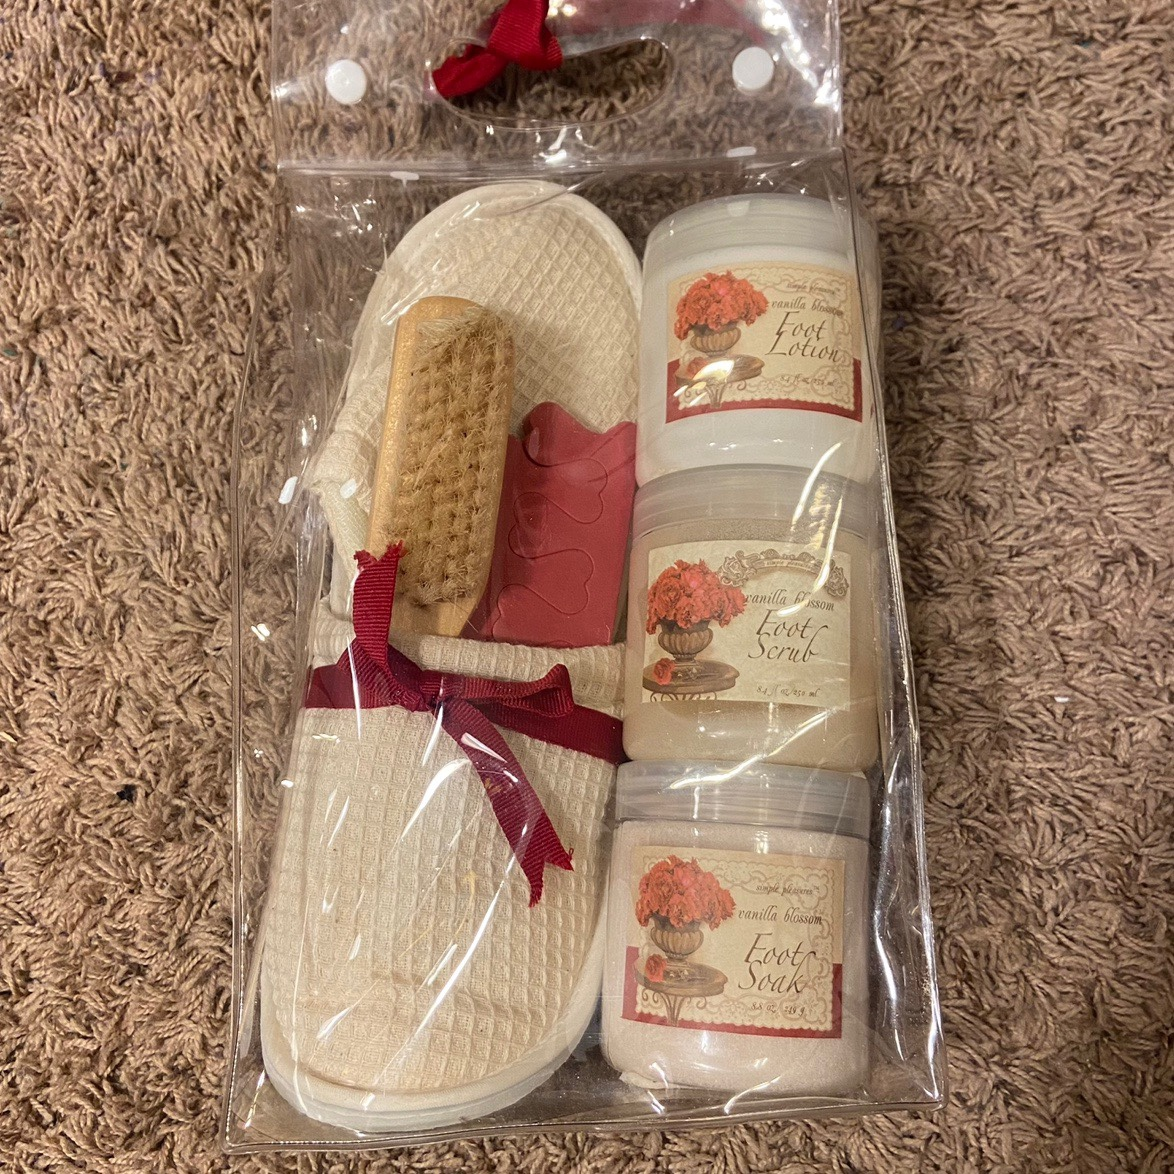 Product Image 1 - SIMPLE PLEASURES FOOT CARE SET  opened